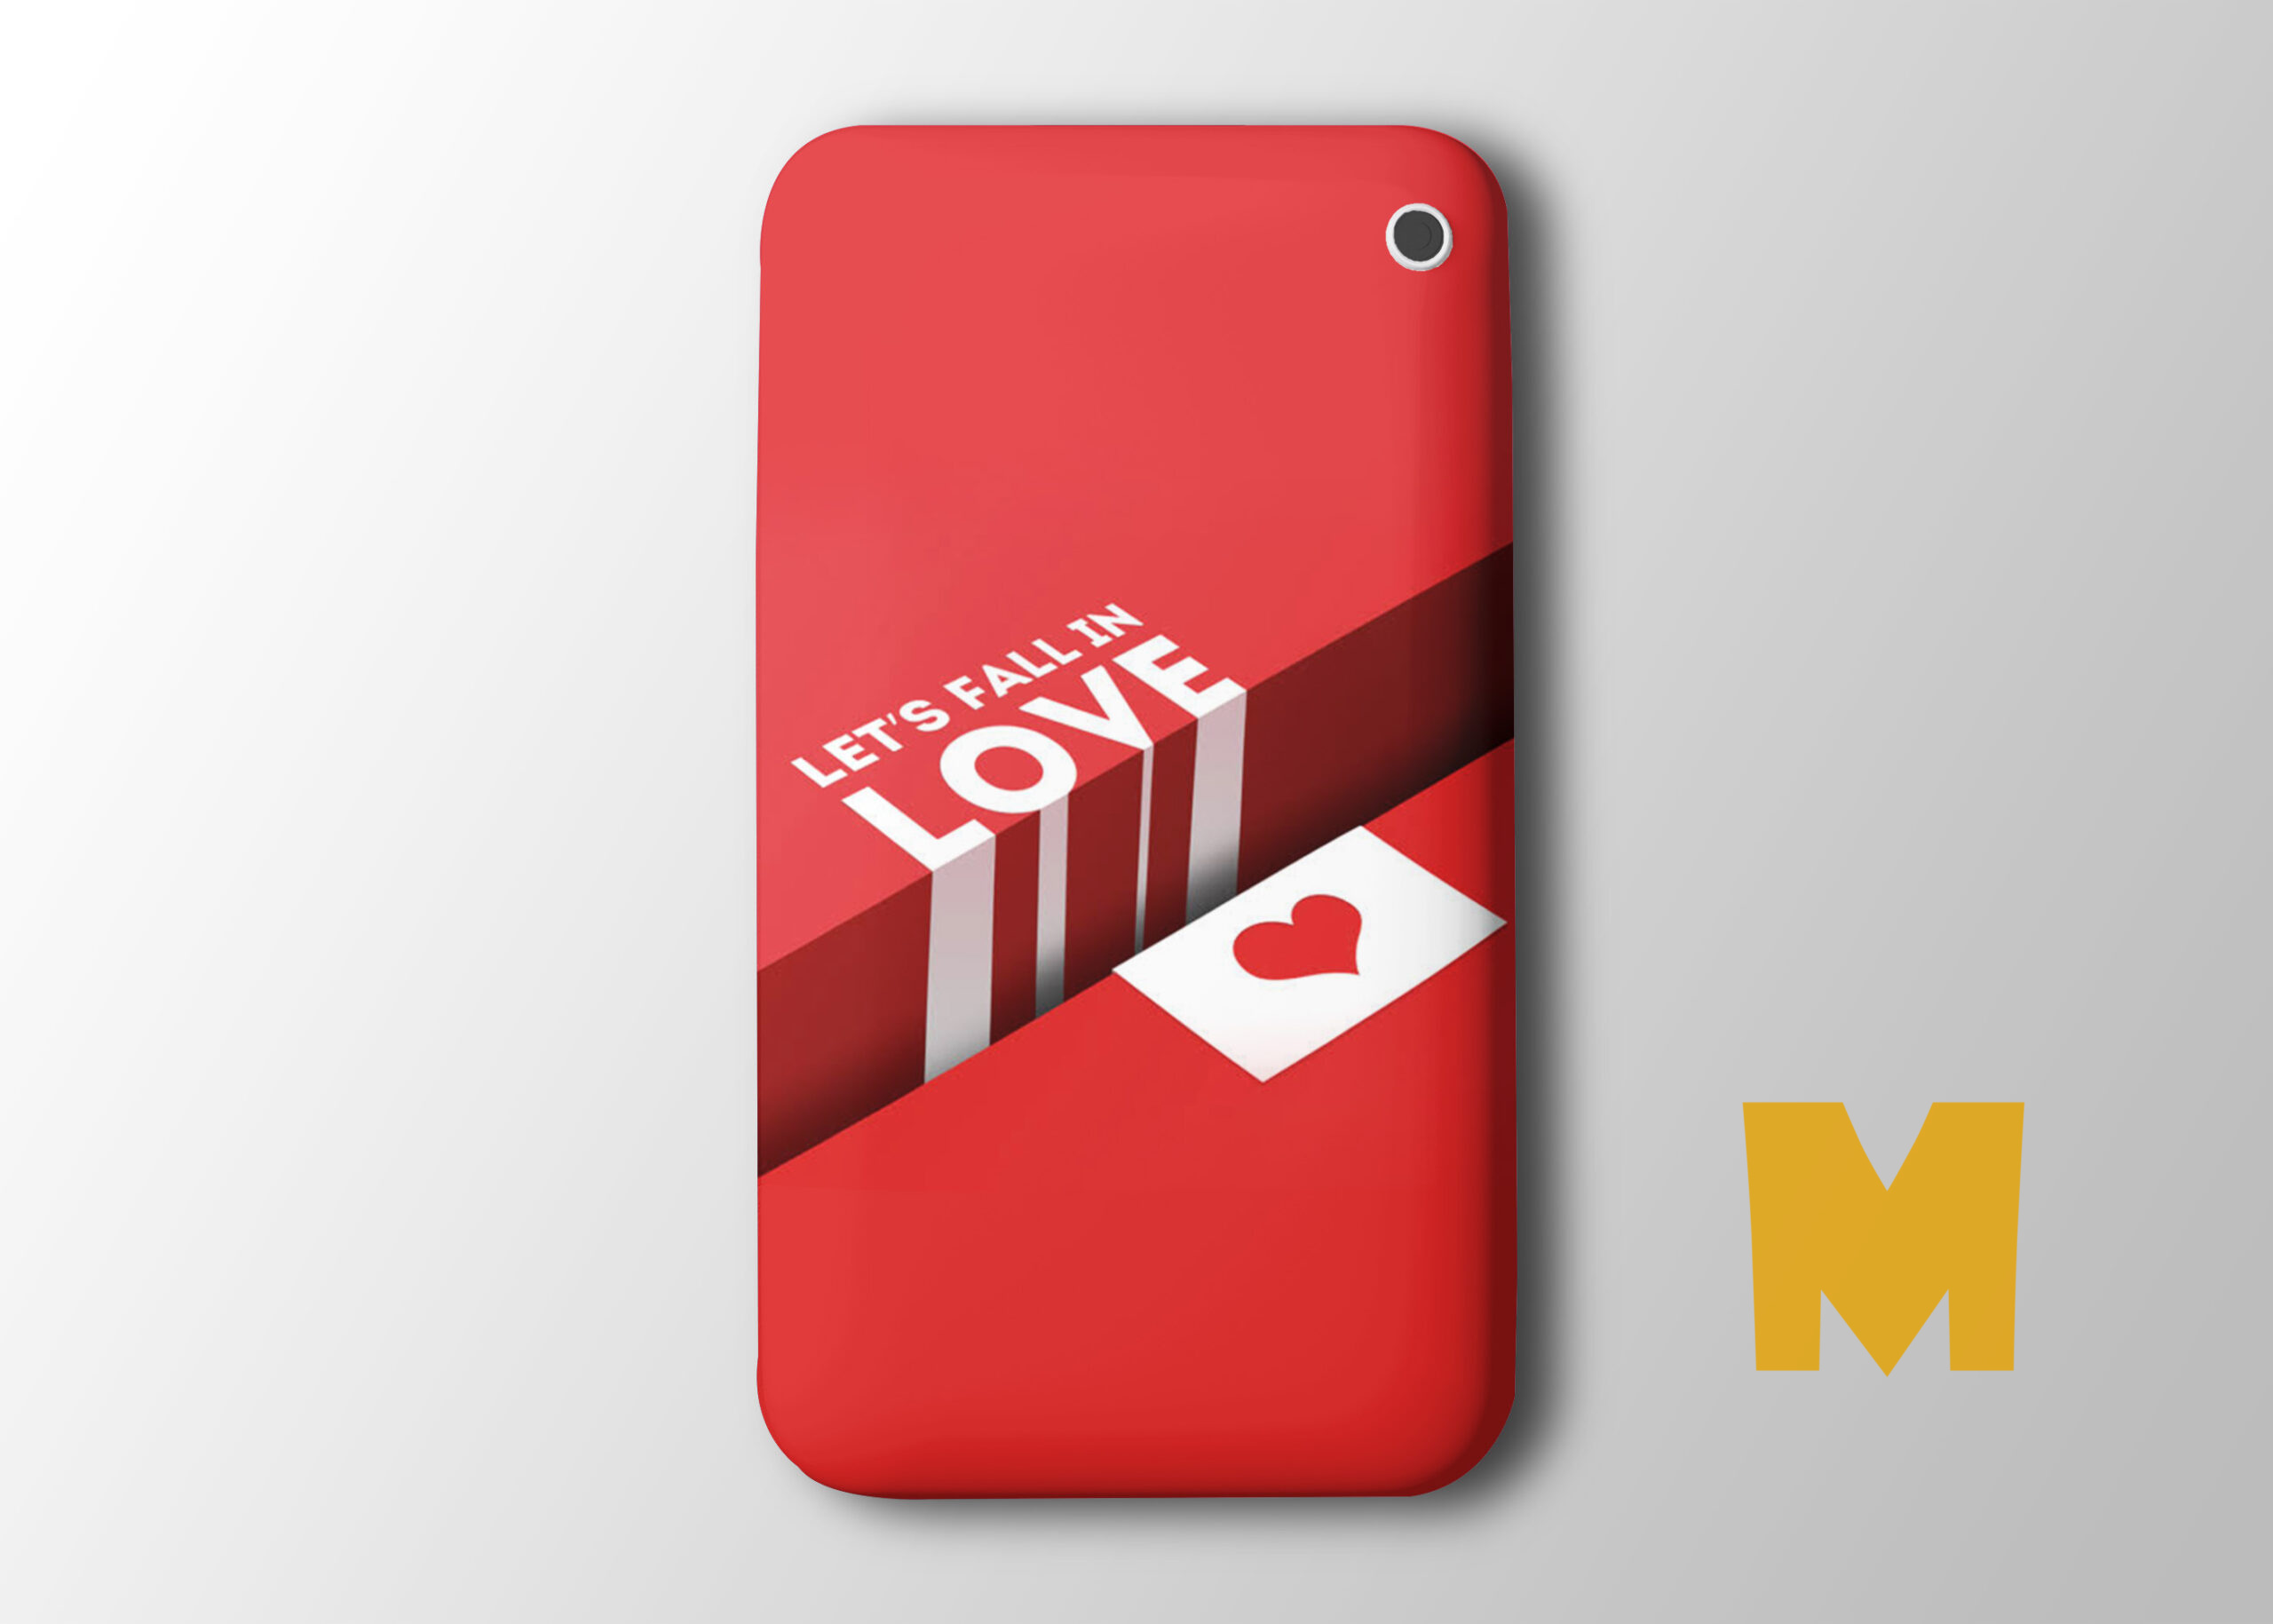 Phone Case Design Mockup